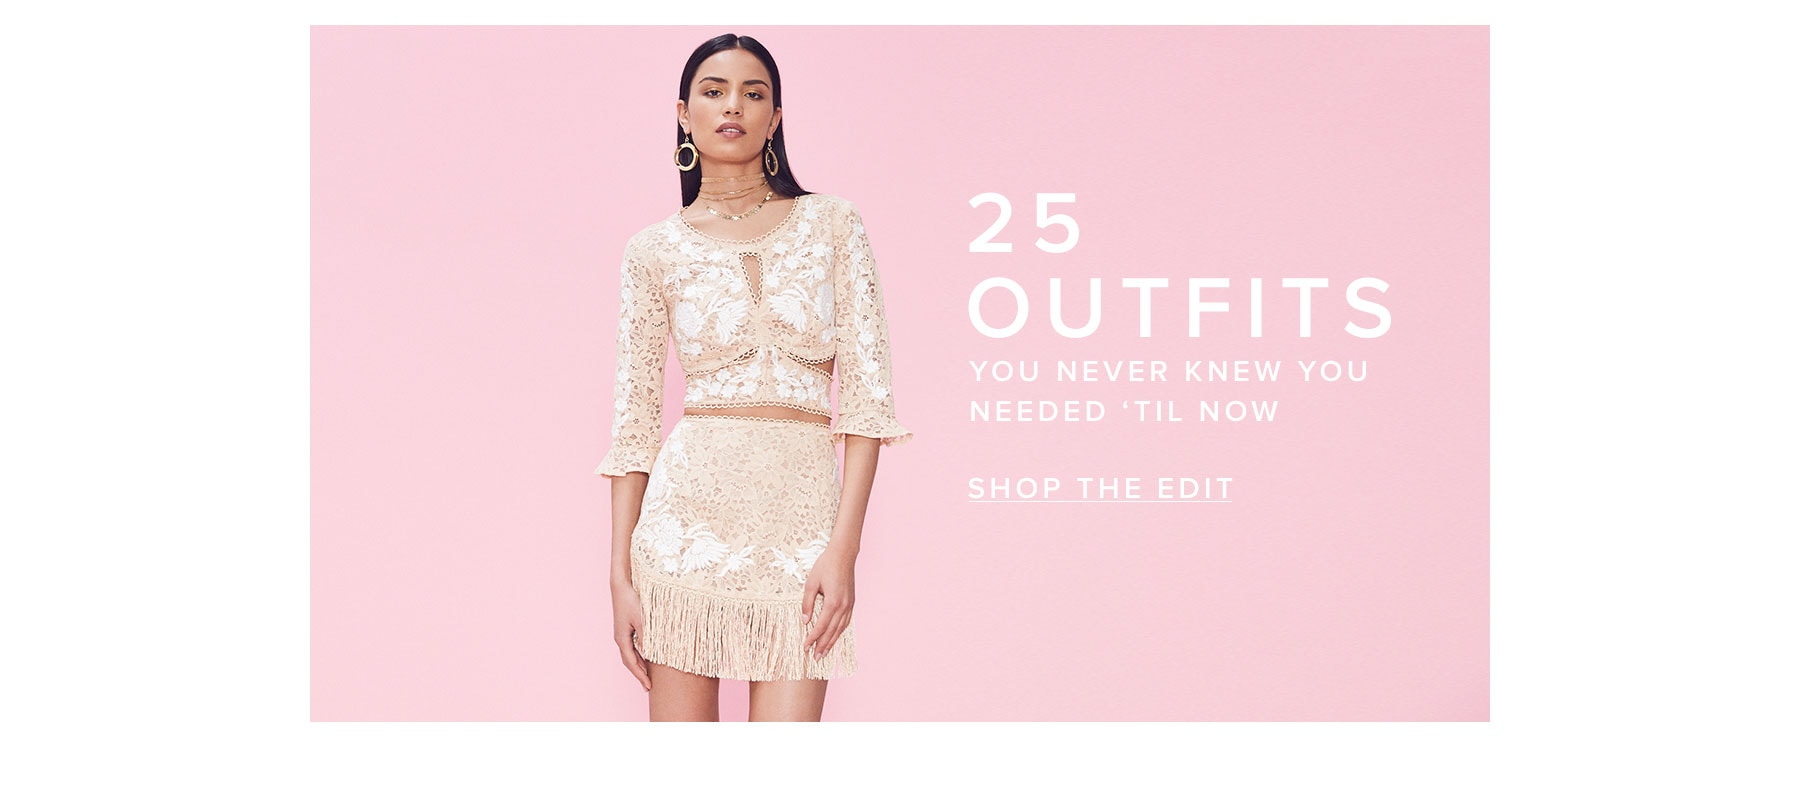 25 outfits you never knew you needed until now. Shop the edit